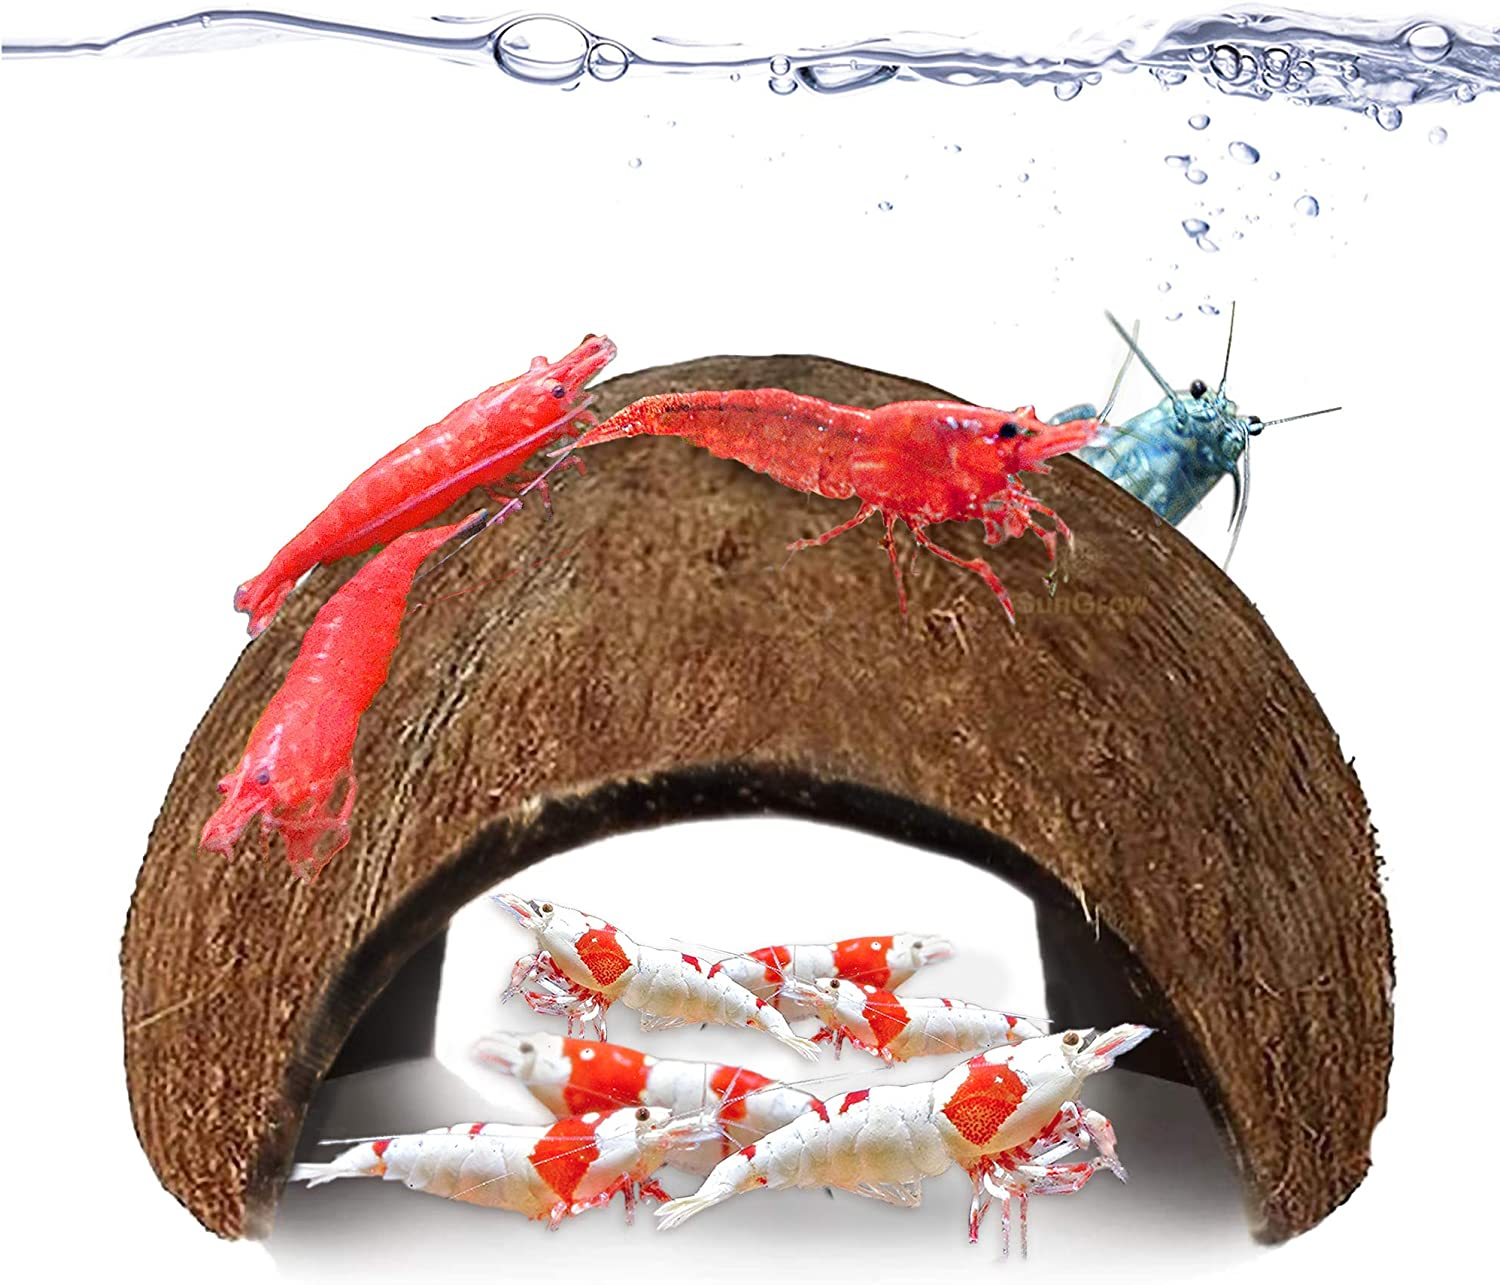 JOR Coco Shrimp Cave, Aquarium Decor, Ideal for Swimming in & Out, Encourages Shedding, Comfortable Shelter and Breeding Area for Crustaceans, 2 Pcs per Pack